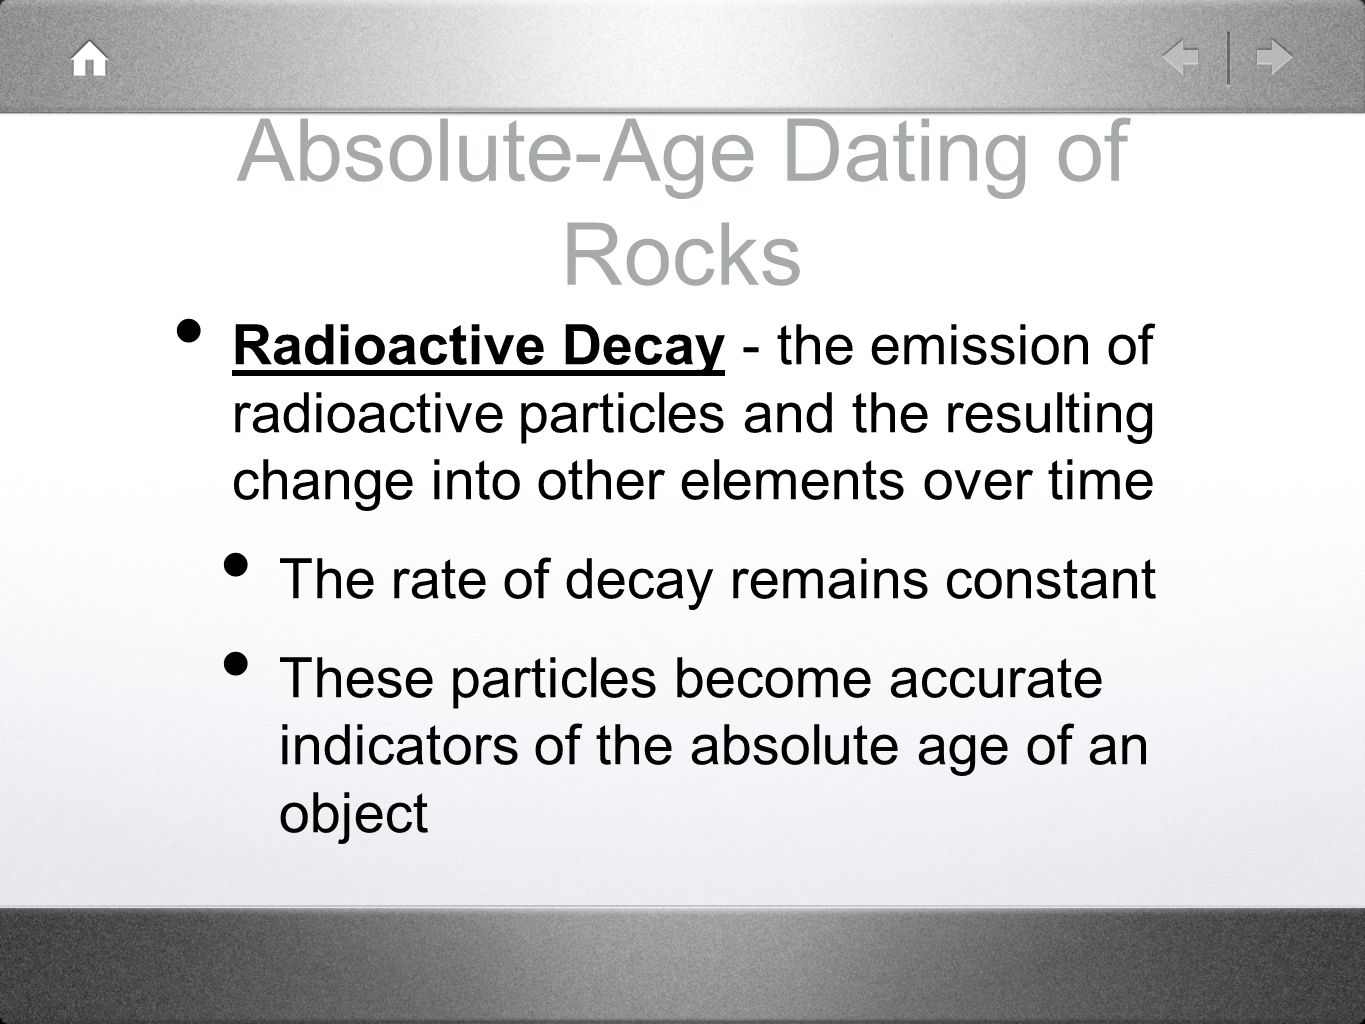 Age dating of rocks